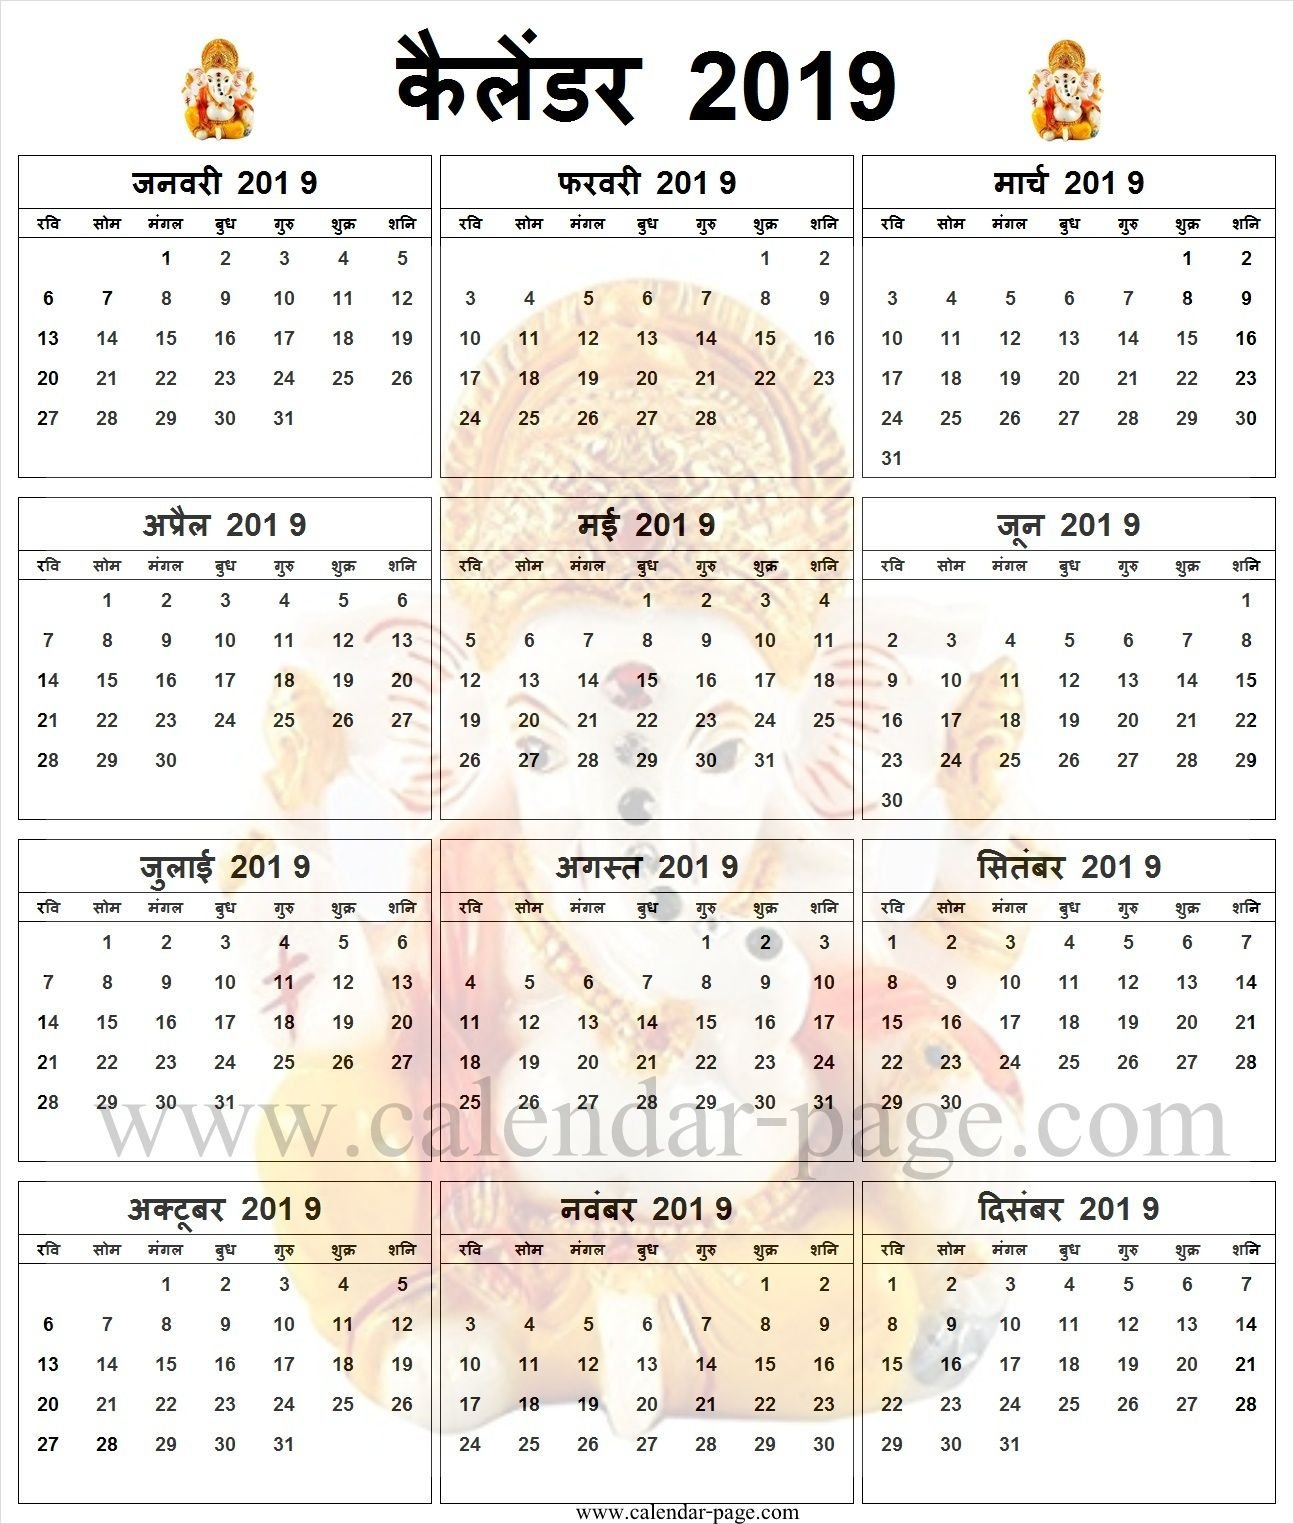 Hindi 2019 Calendar | Calendar 2019 Yearly Template | Free Calendar Calendar 2019 Hindi